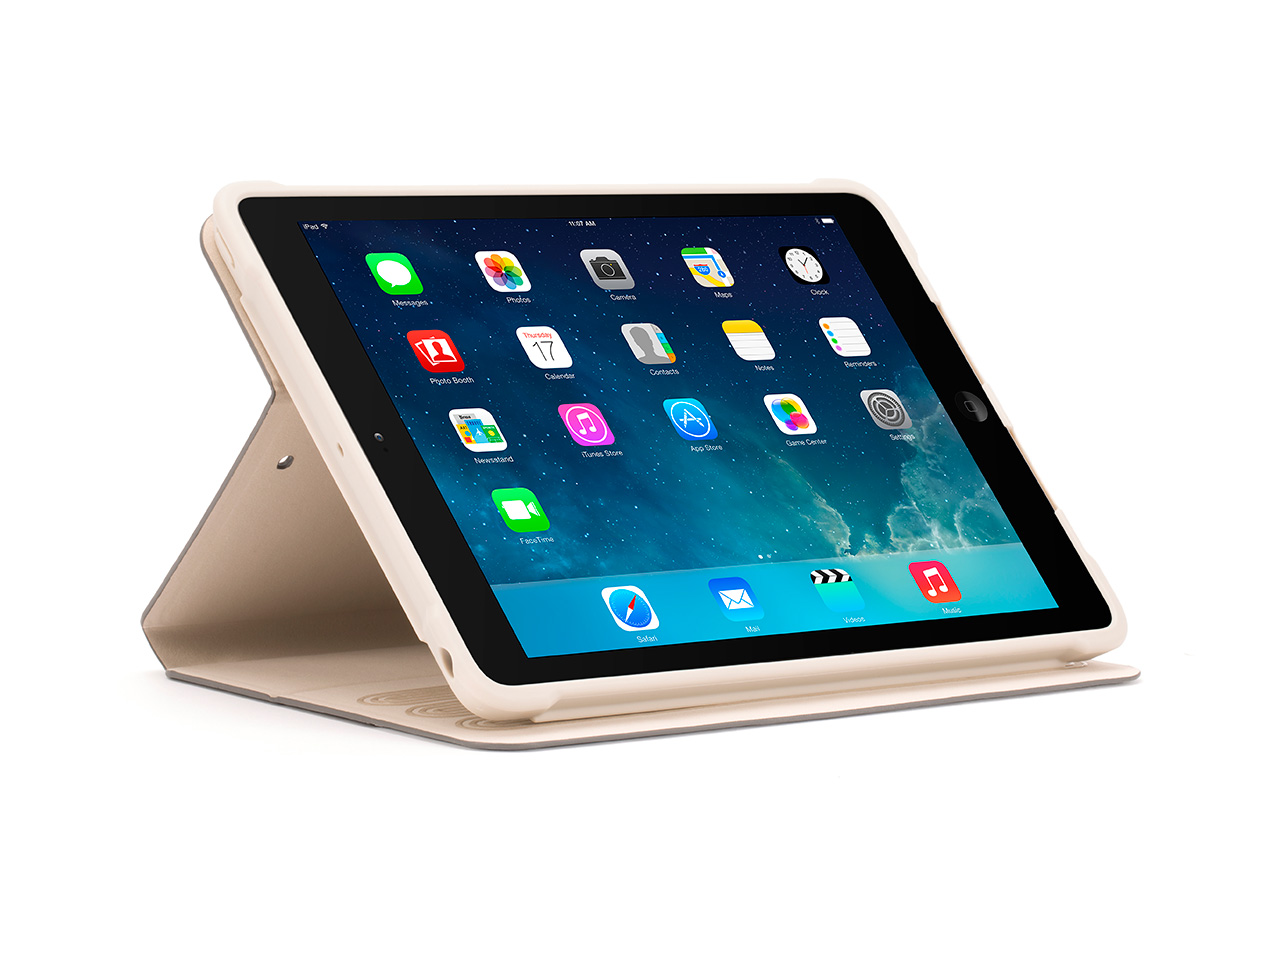 Nickel TurnFolio Multi-Positional Folio for iPad Air